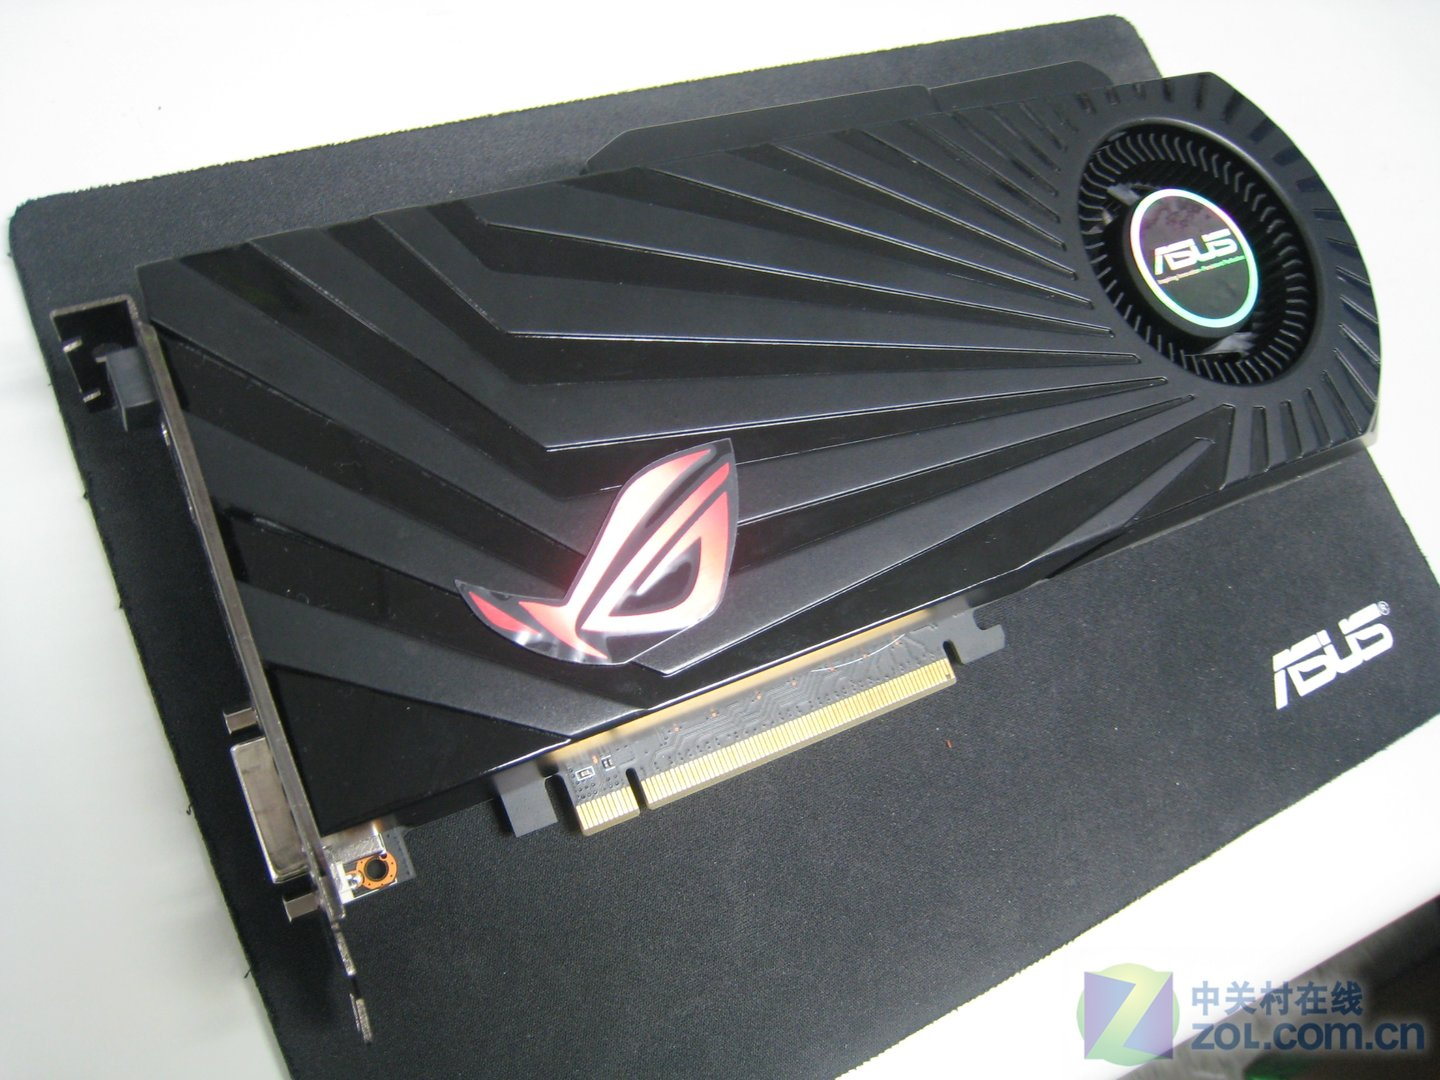 Asus ROG Radeon HD 5870 Matrix